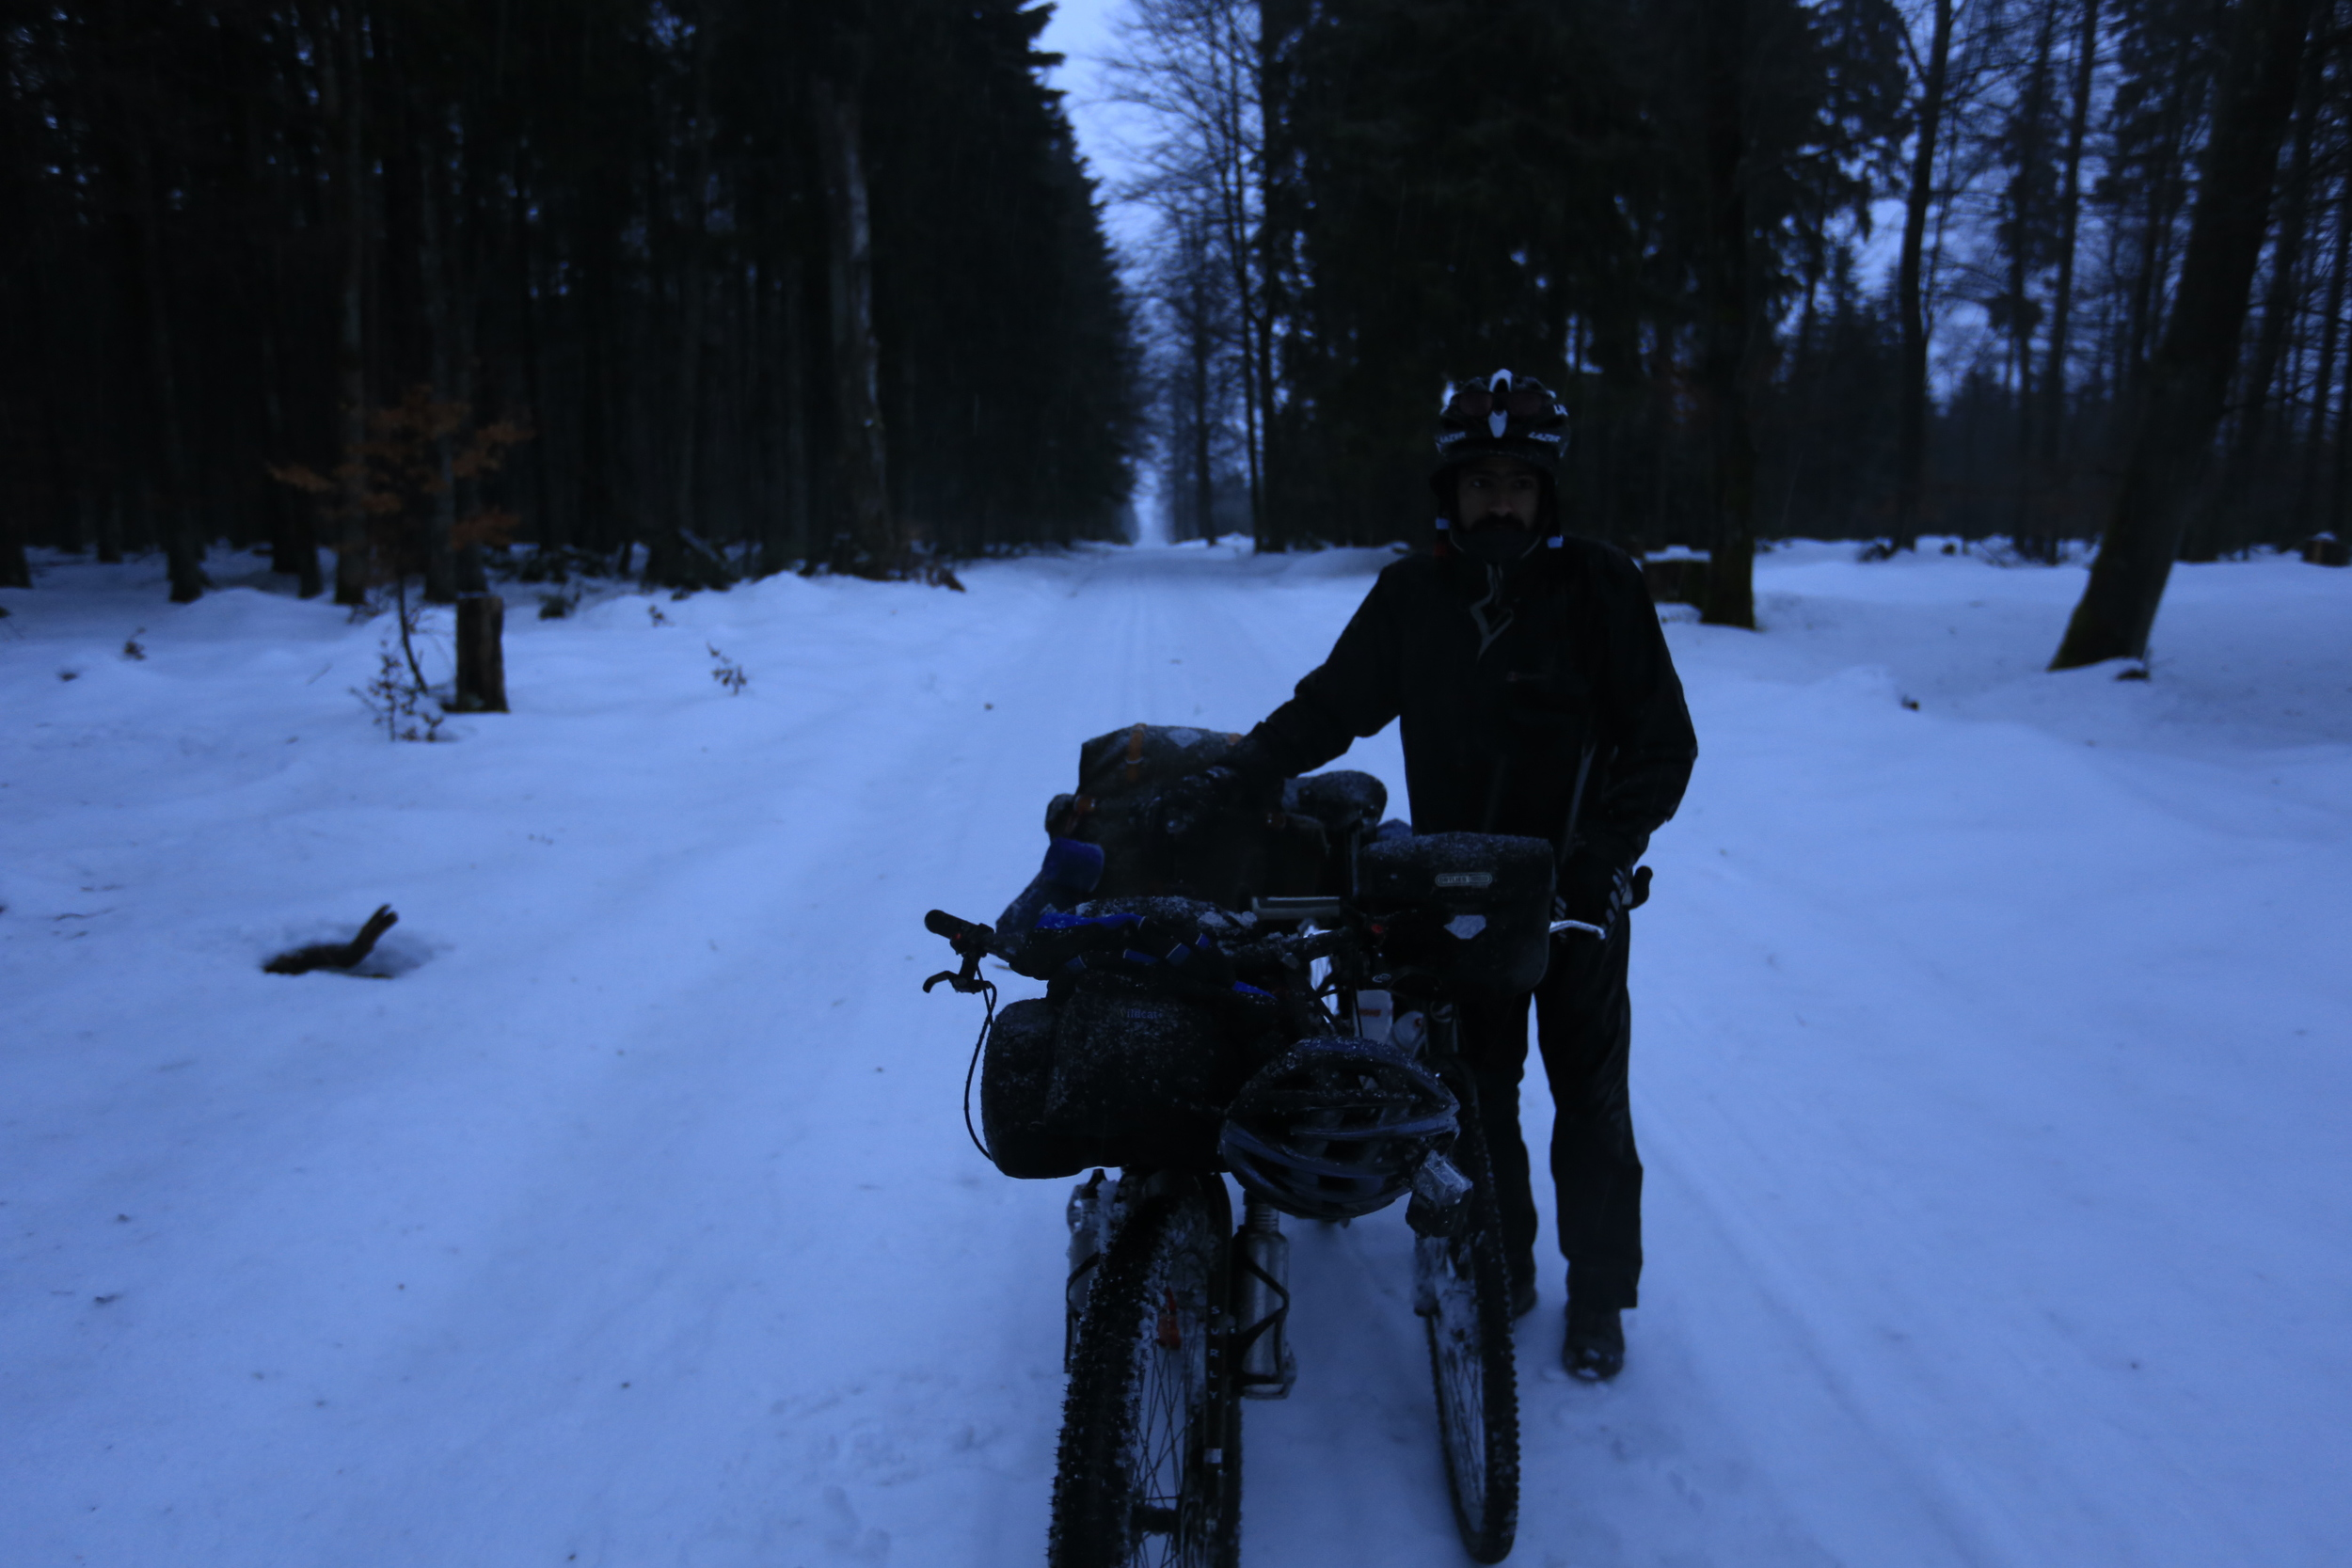 fat bike, surly, surly ecr, giant, giant hybrid, bicycle touring, cycle touring, adventure, snow, singletrack